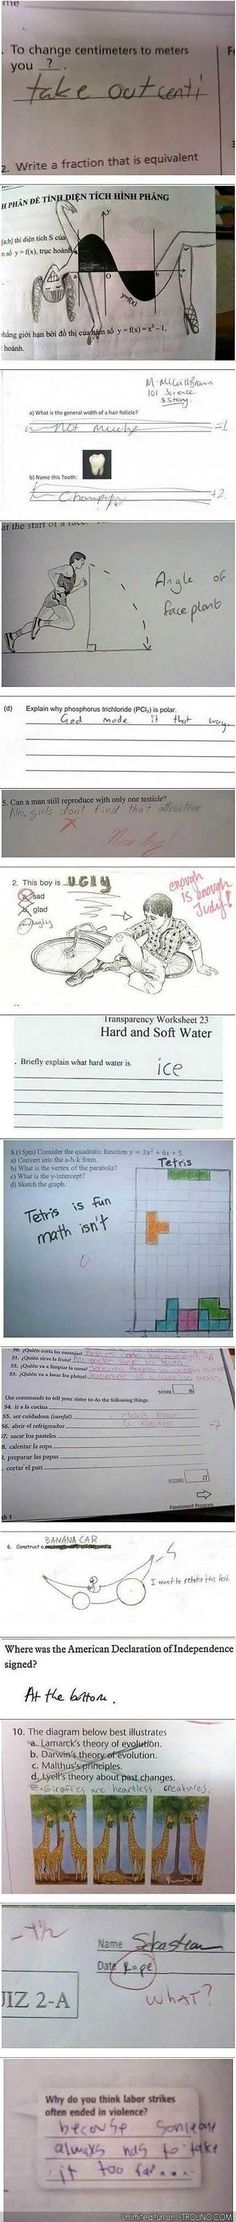 How to fail a test and be the coolest kid ever.  So funny.  I love kids.